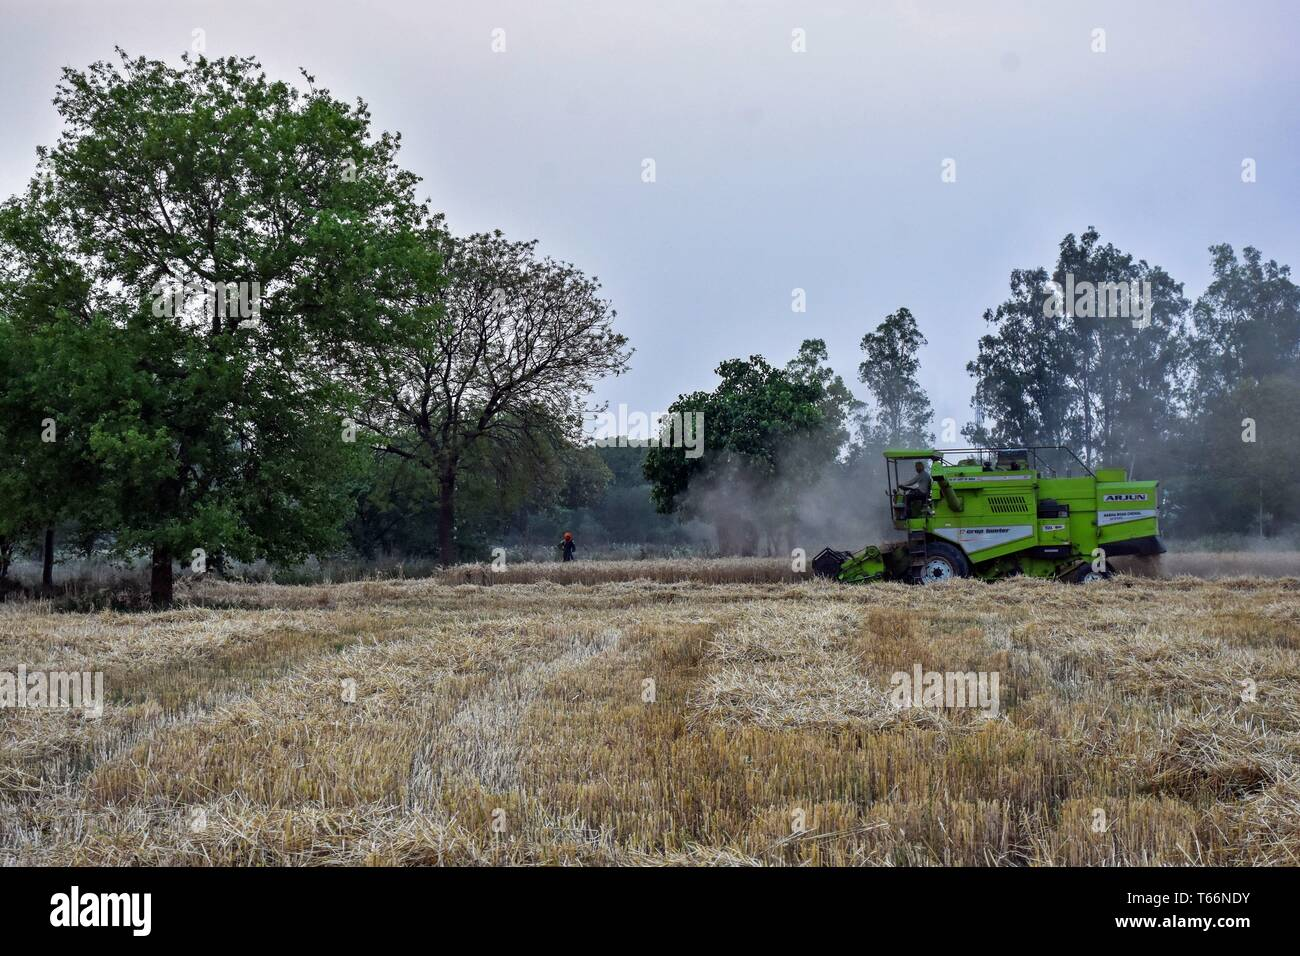 An Indian farmer seen using a combine during the harvest in